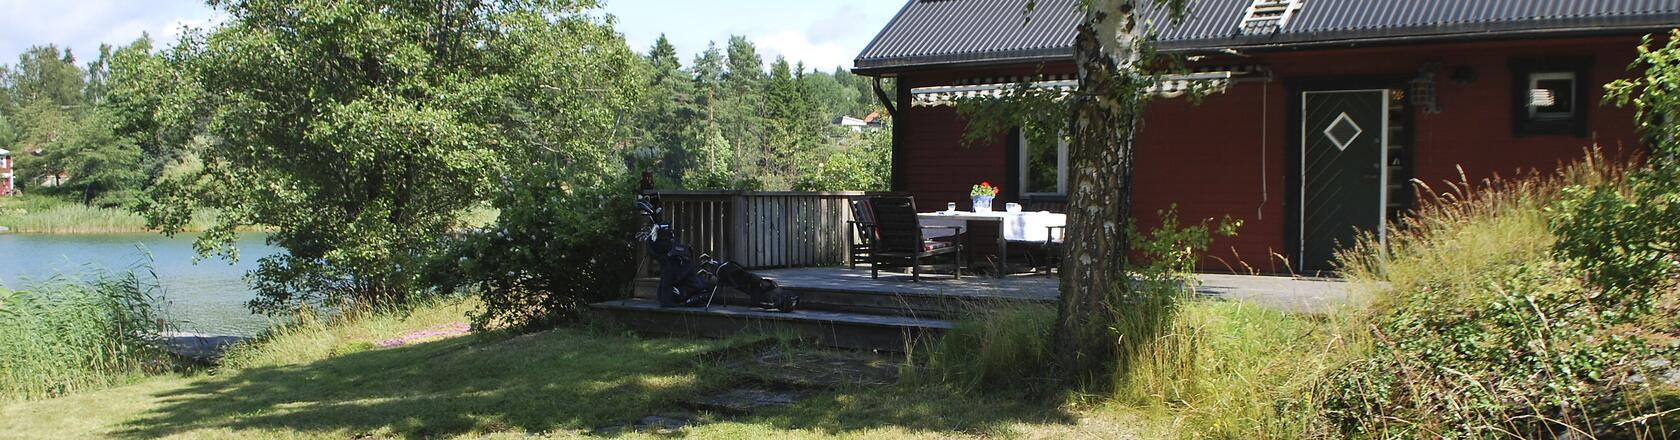 Svärdsö in Sweden - Rent a holiday home  with DanCenter